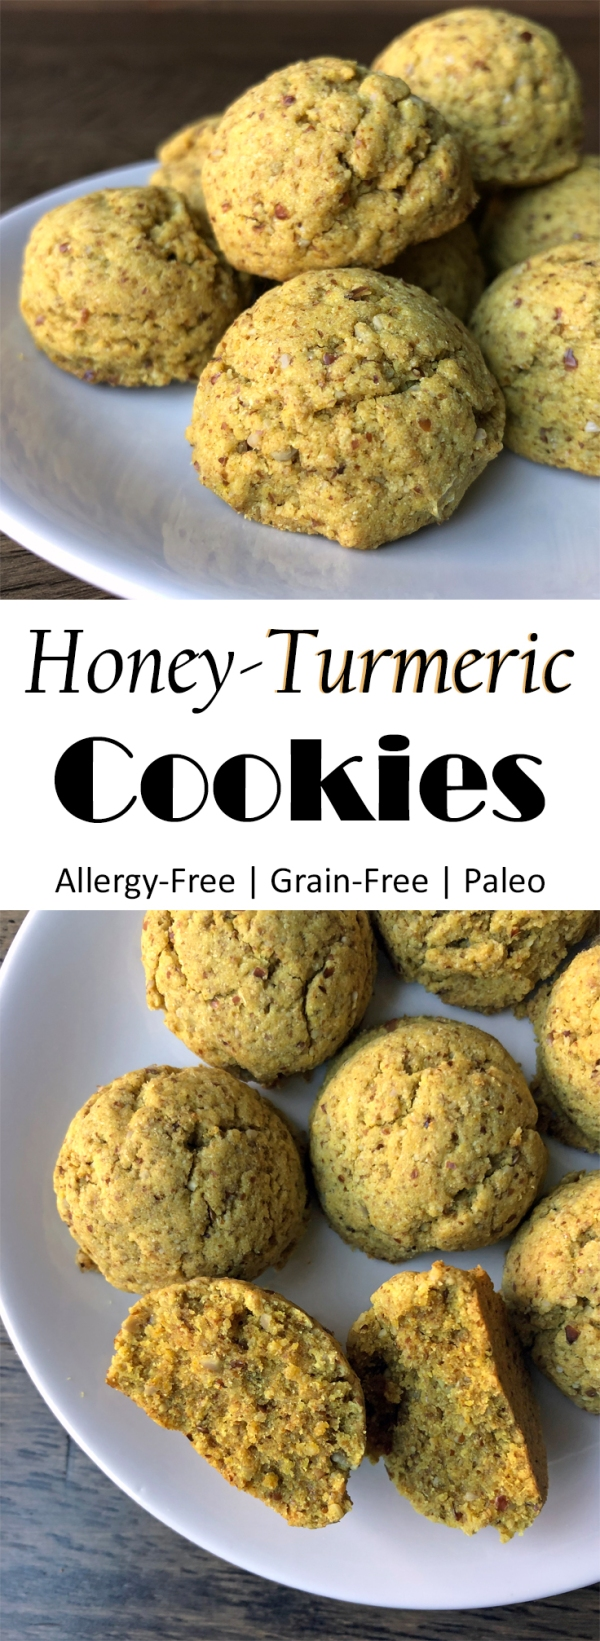 Honey Turmeric Cookies.jpg